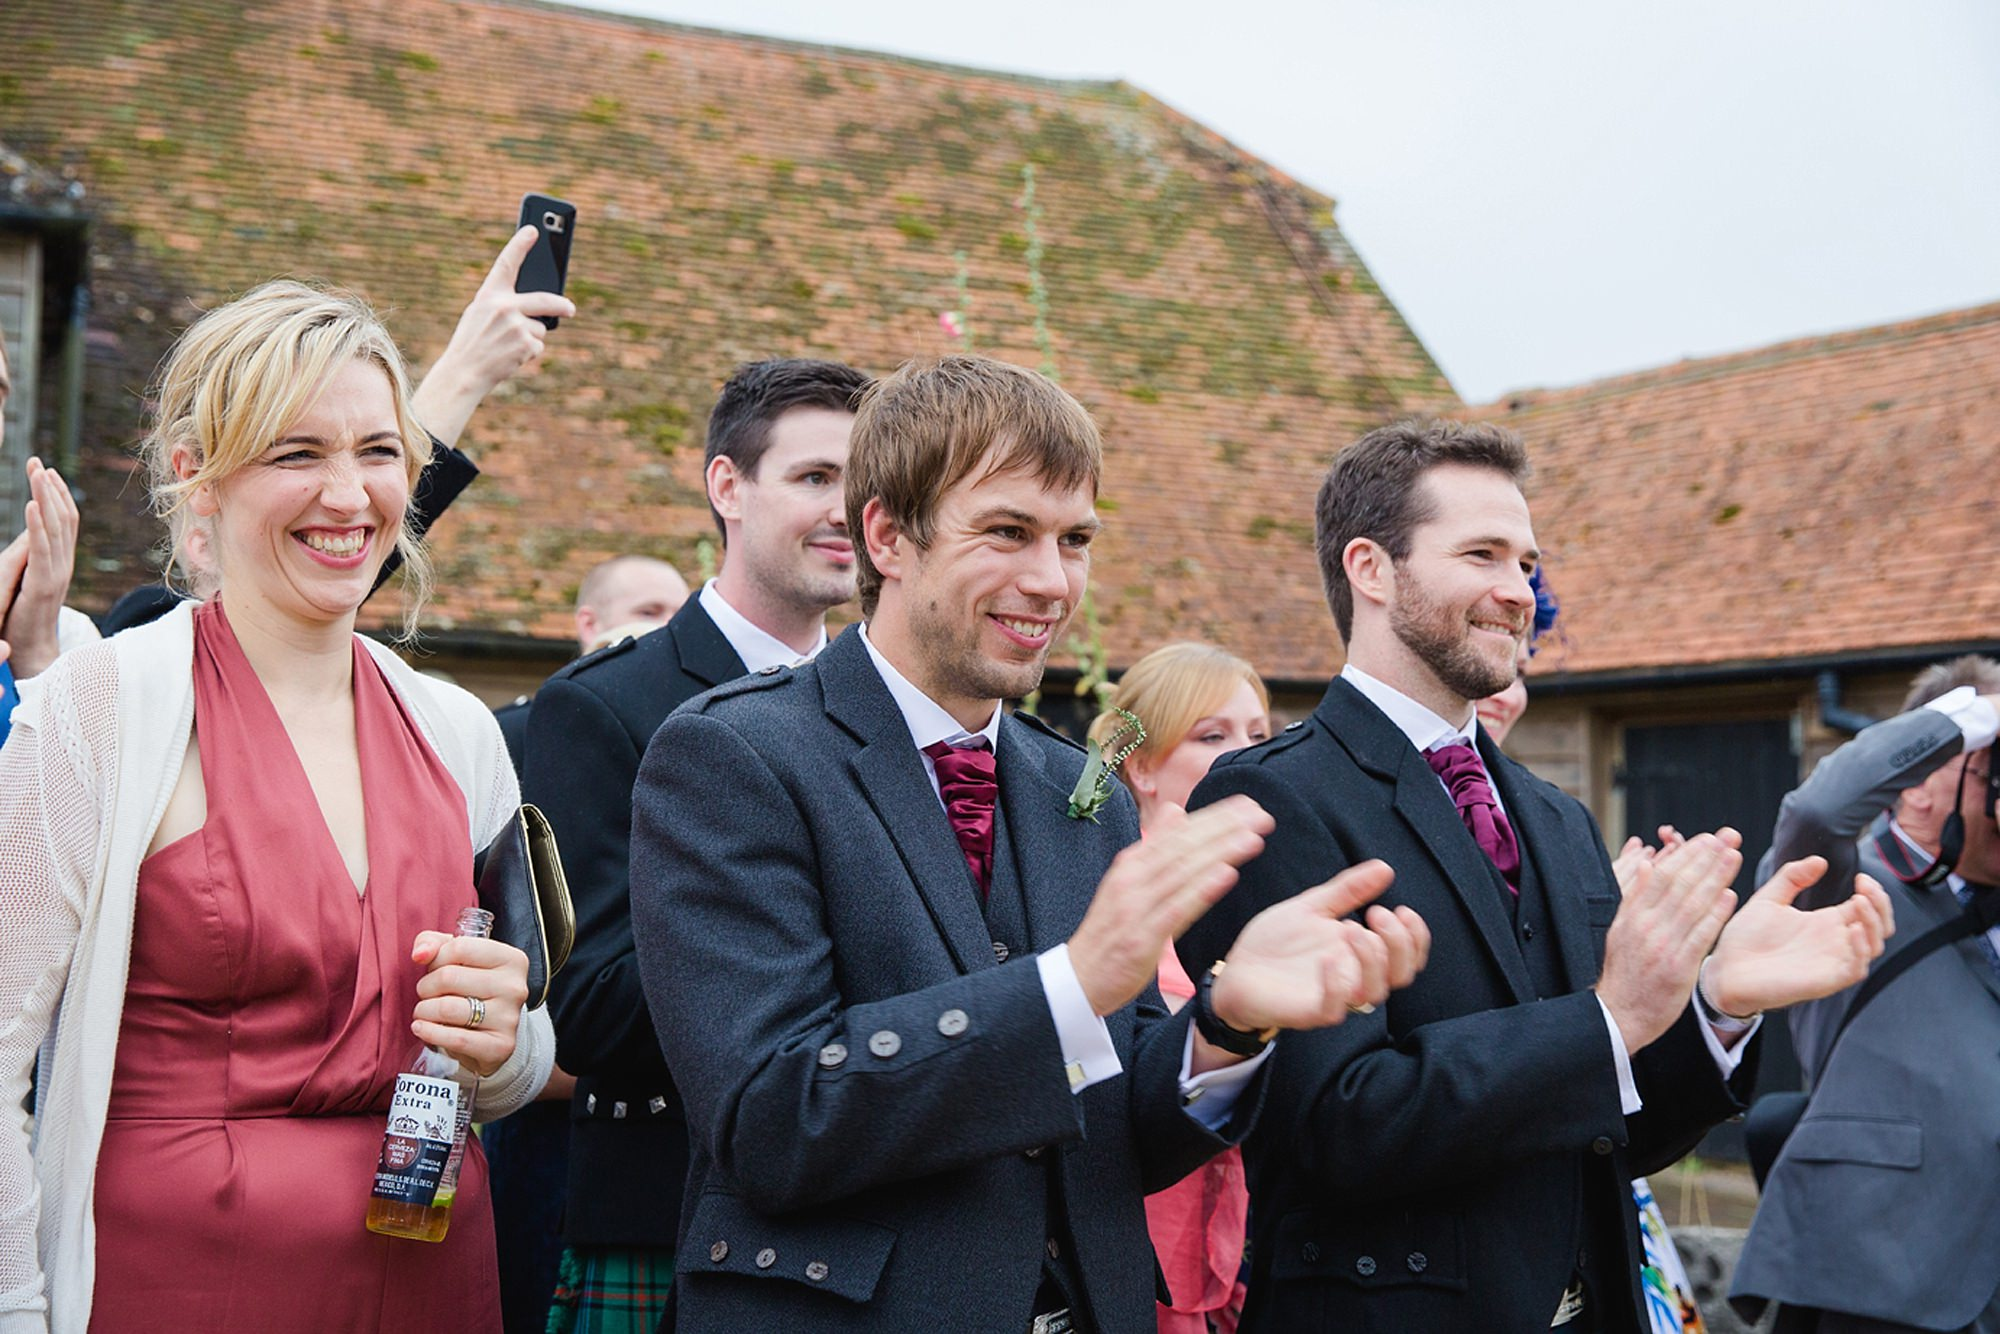 outdoor humanist wedding photography cheering guests